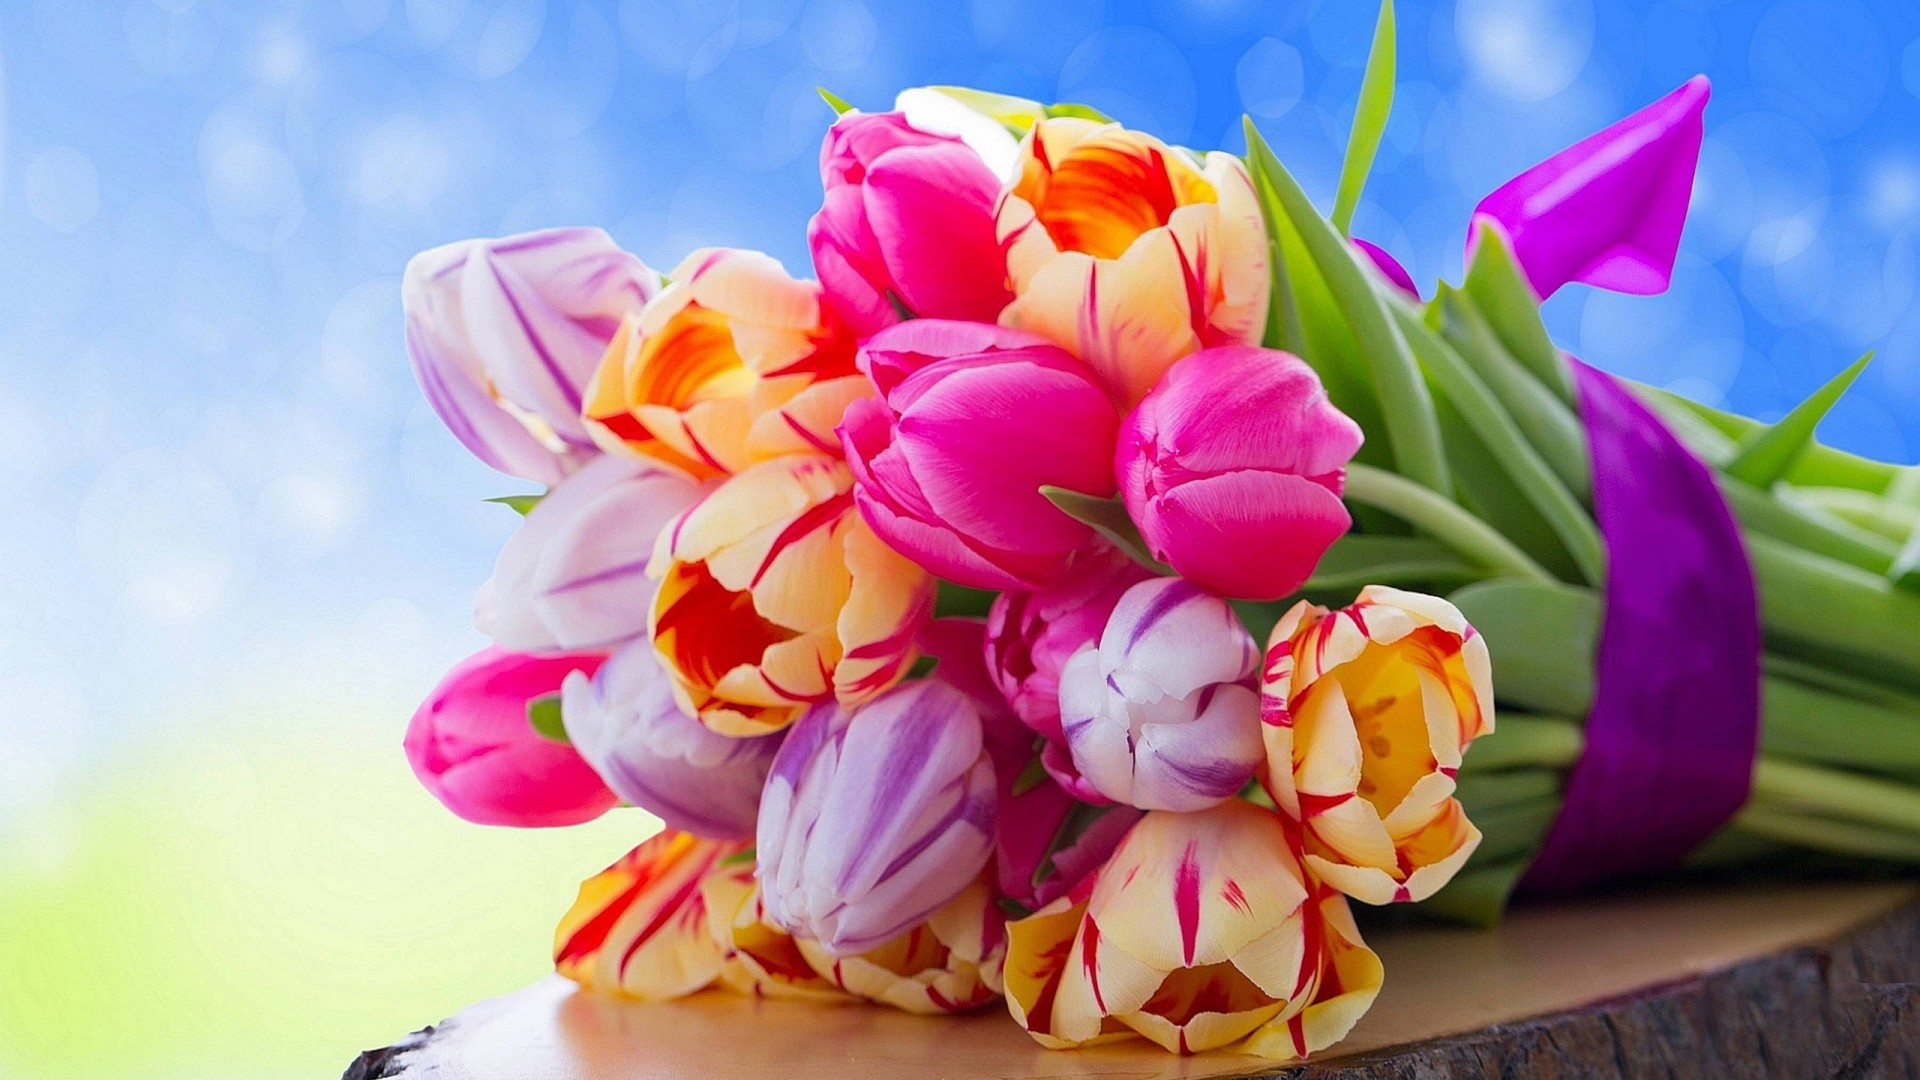 20% off Florist Choice Bouquets – Arena Flowers Voucher Code